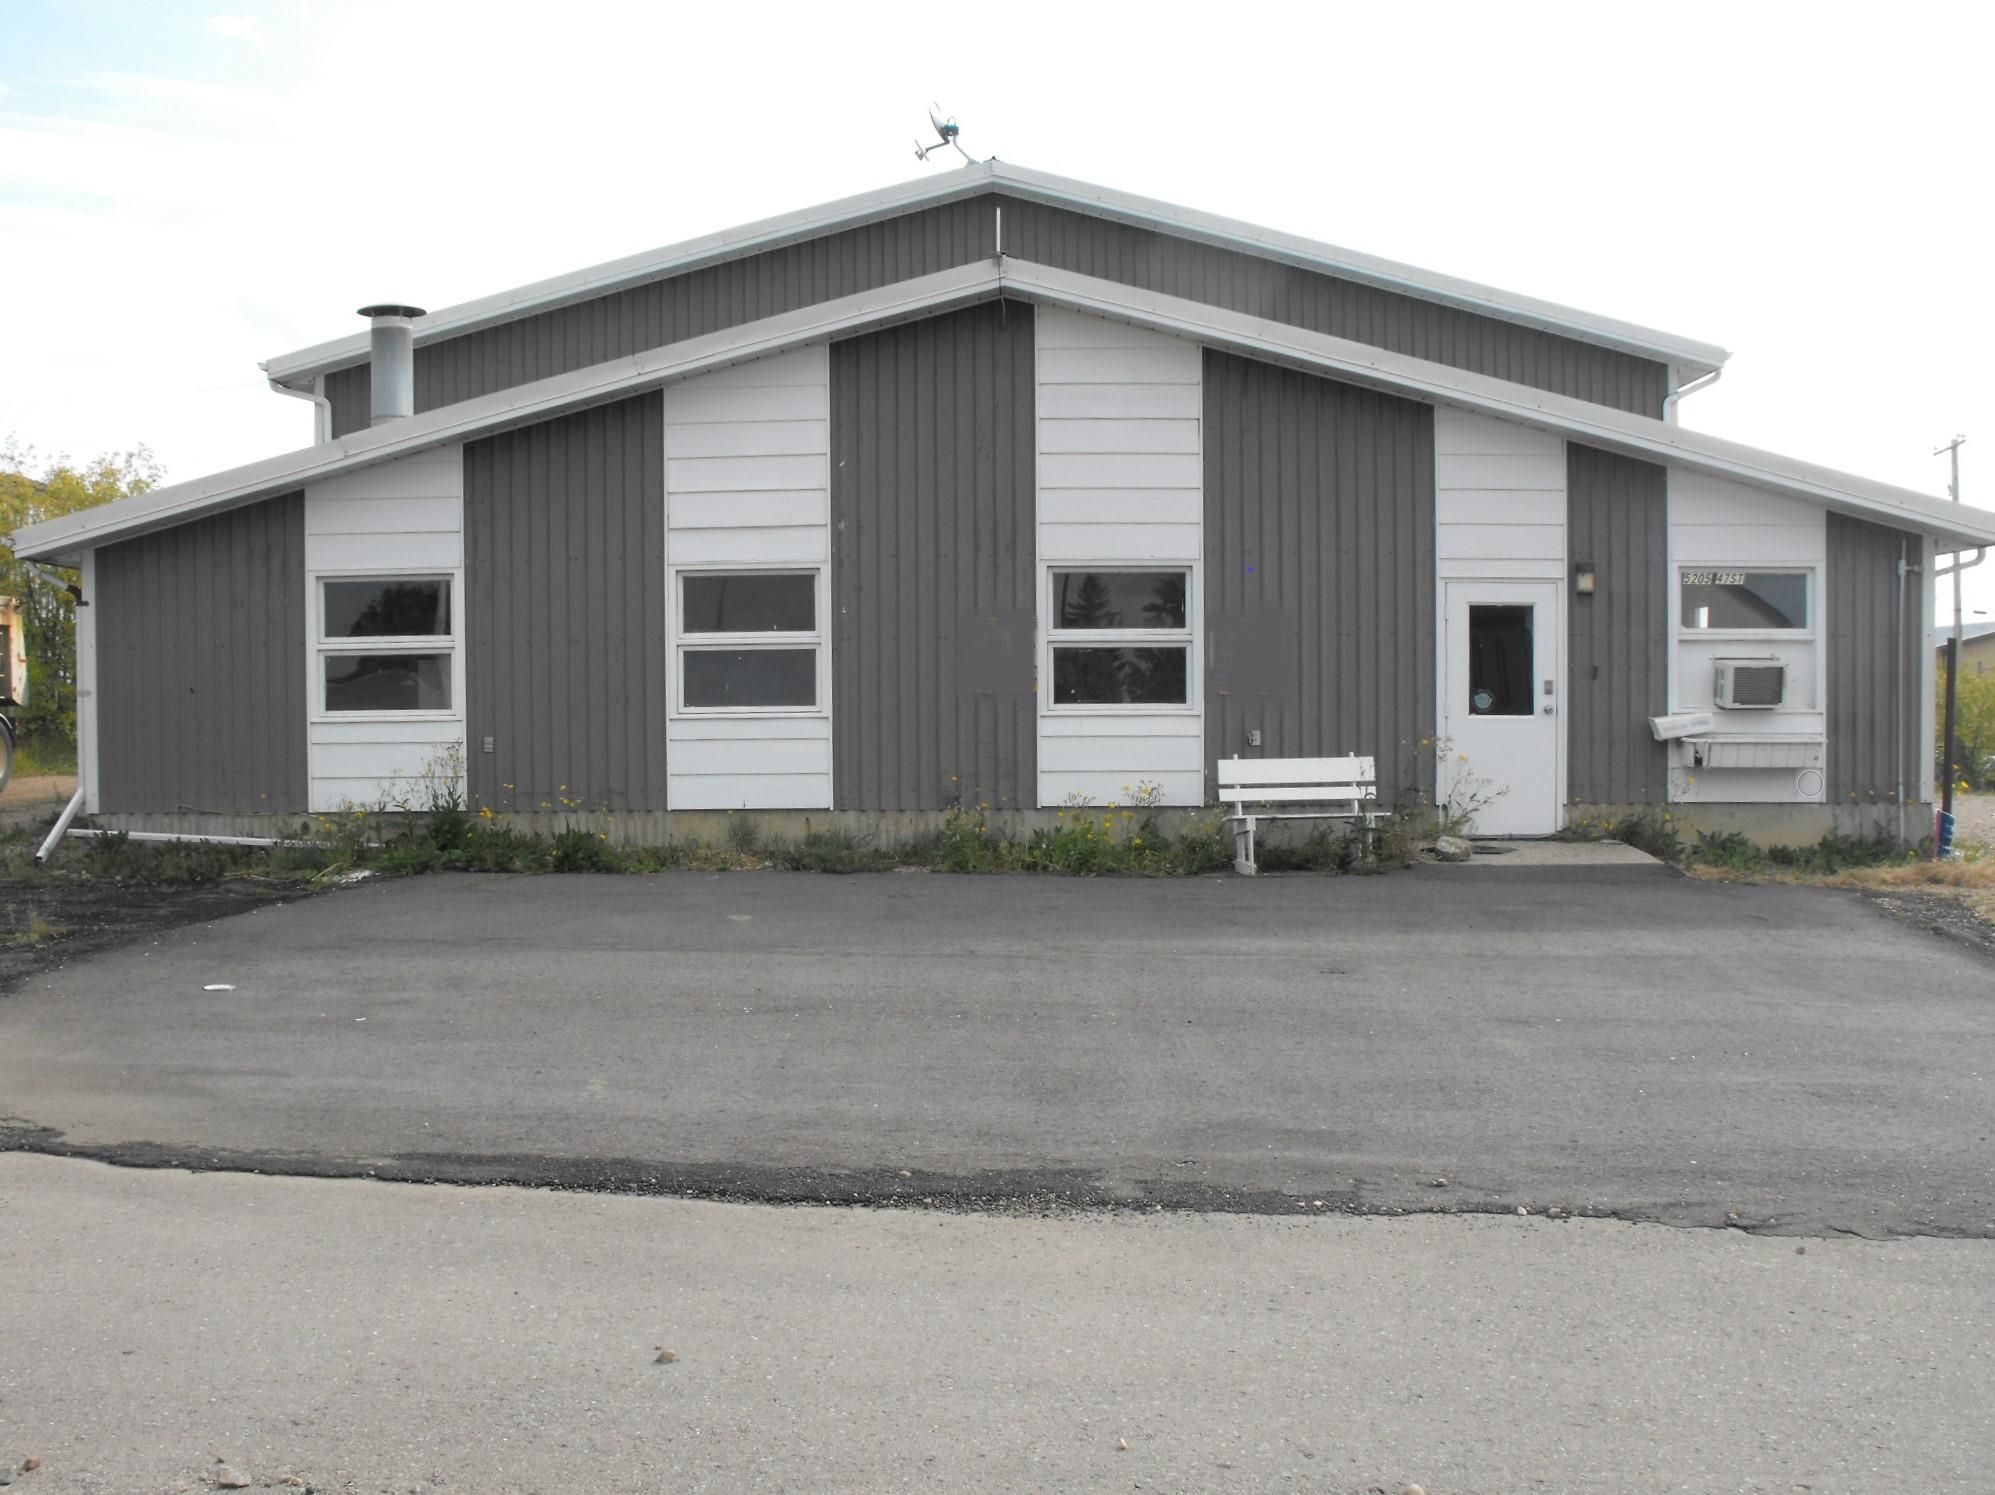 Main Photo: 5205 47 Street: Elk Point Industrial for sale or lease : MLS®# E4241838